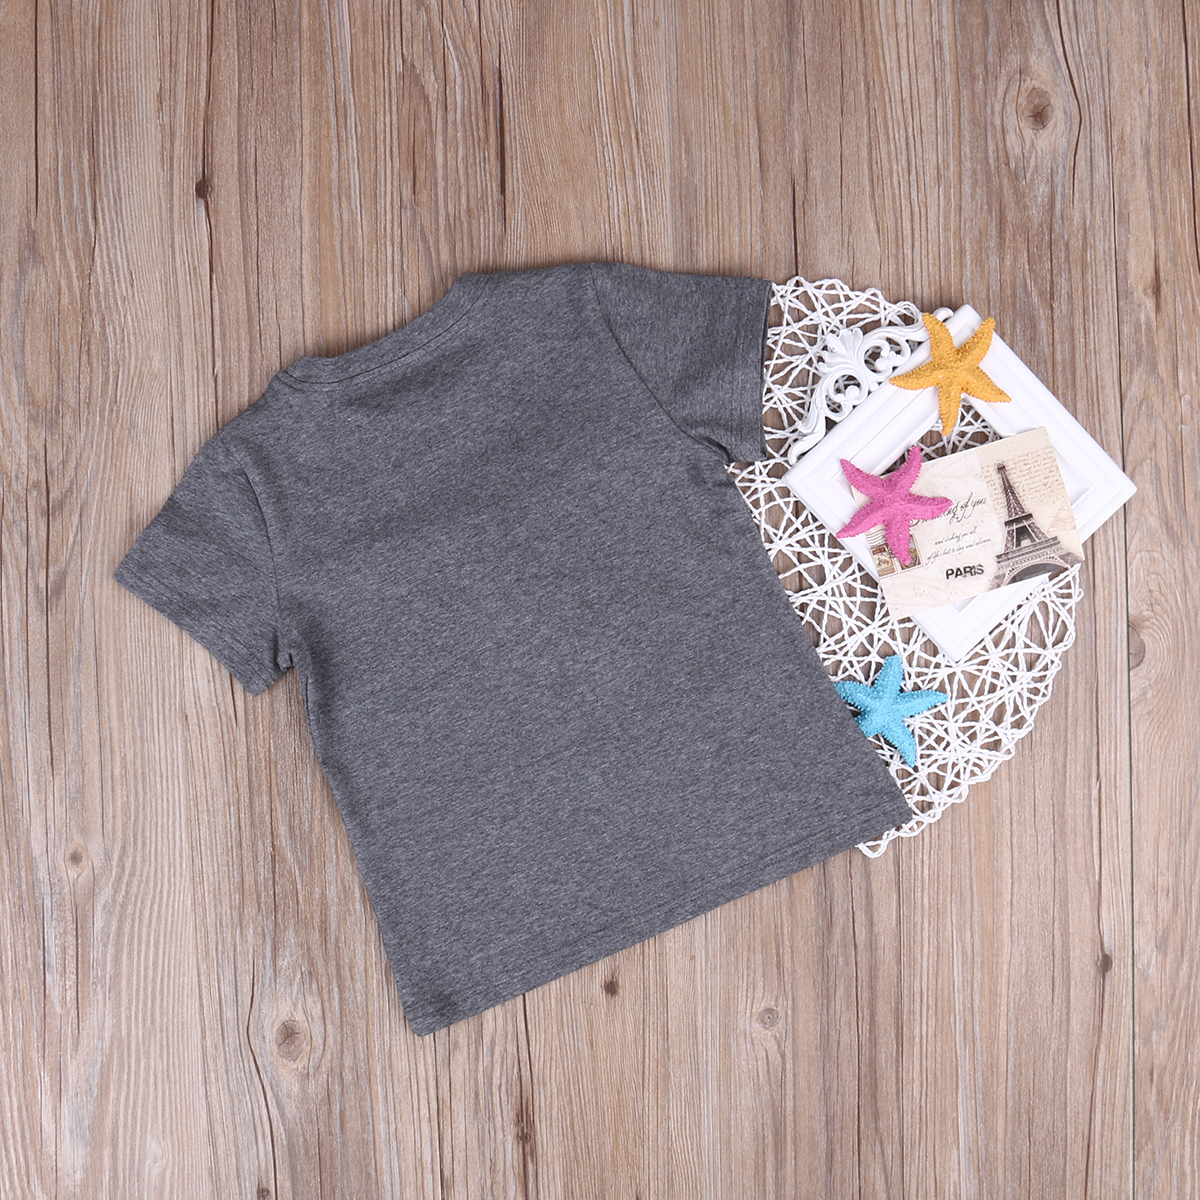 2017-Fashion-Baby-Boy-Girl-Short-Sleeve-Clothes-T-shirt-Graphic-Tee-Top-Toddler-Clothes-Baby-girl-tops-1-6Y-Baby-clothing-5